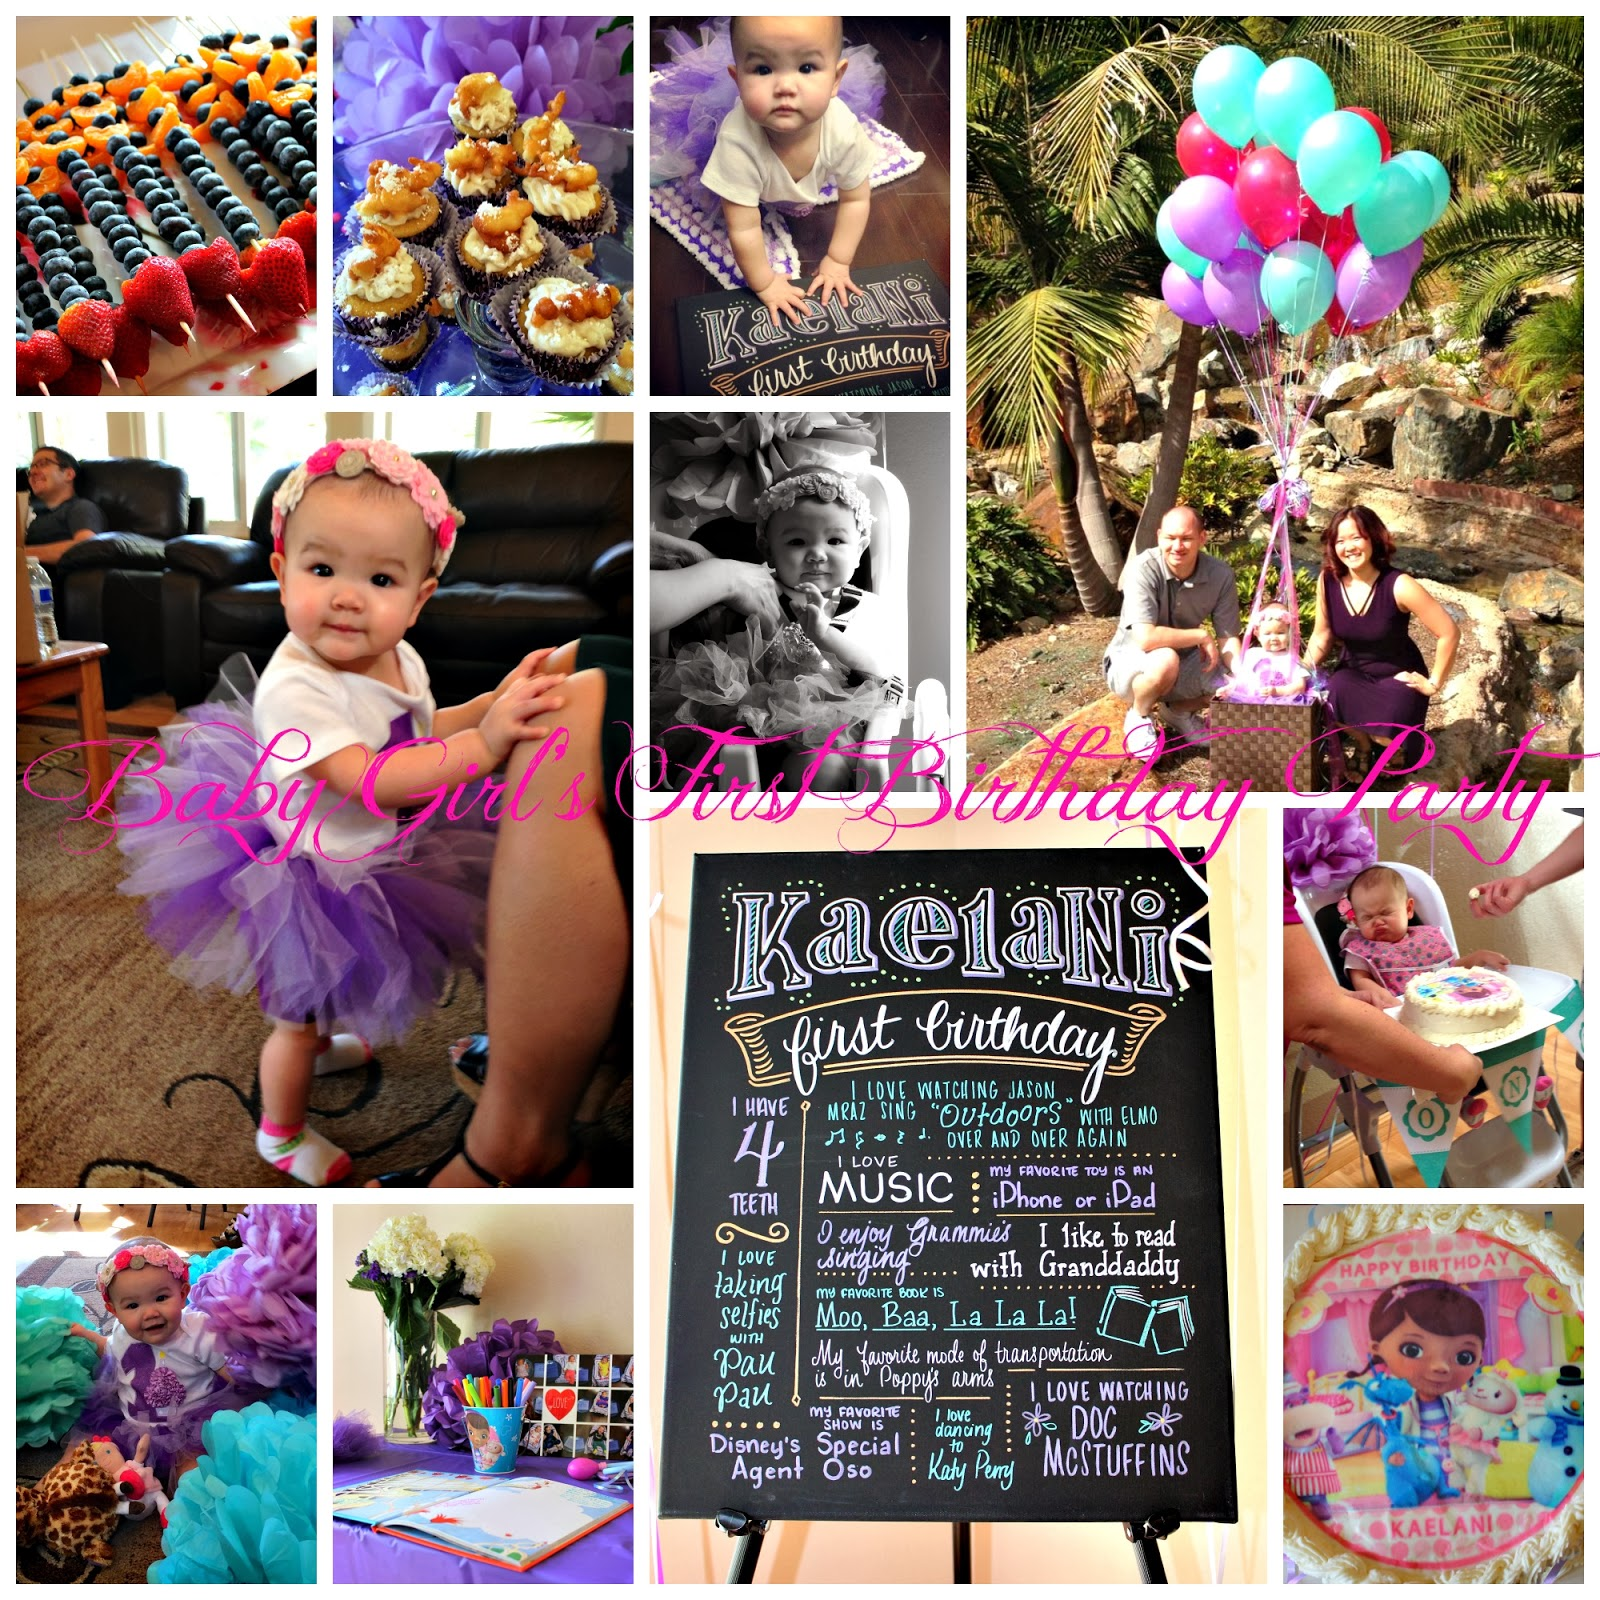 San diego hr mom february 2014 for Baby girl 1st birthday party decoration ideas